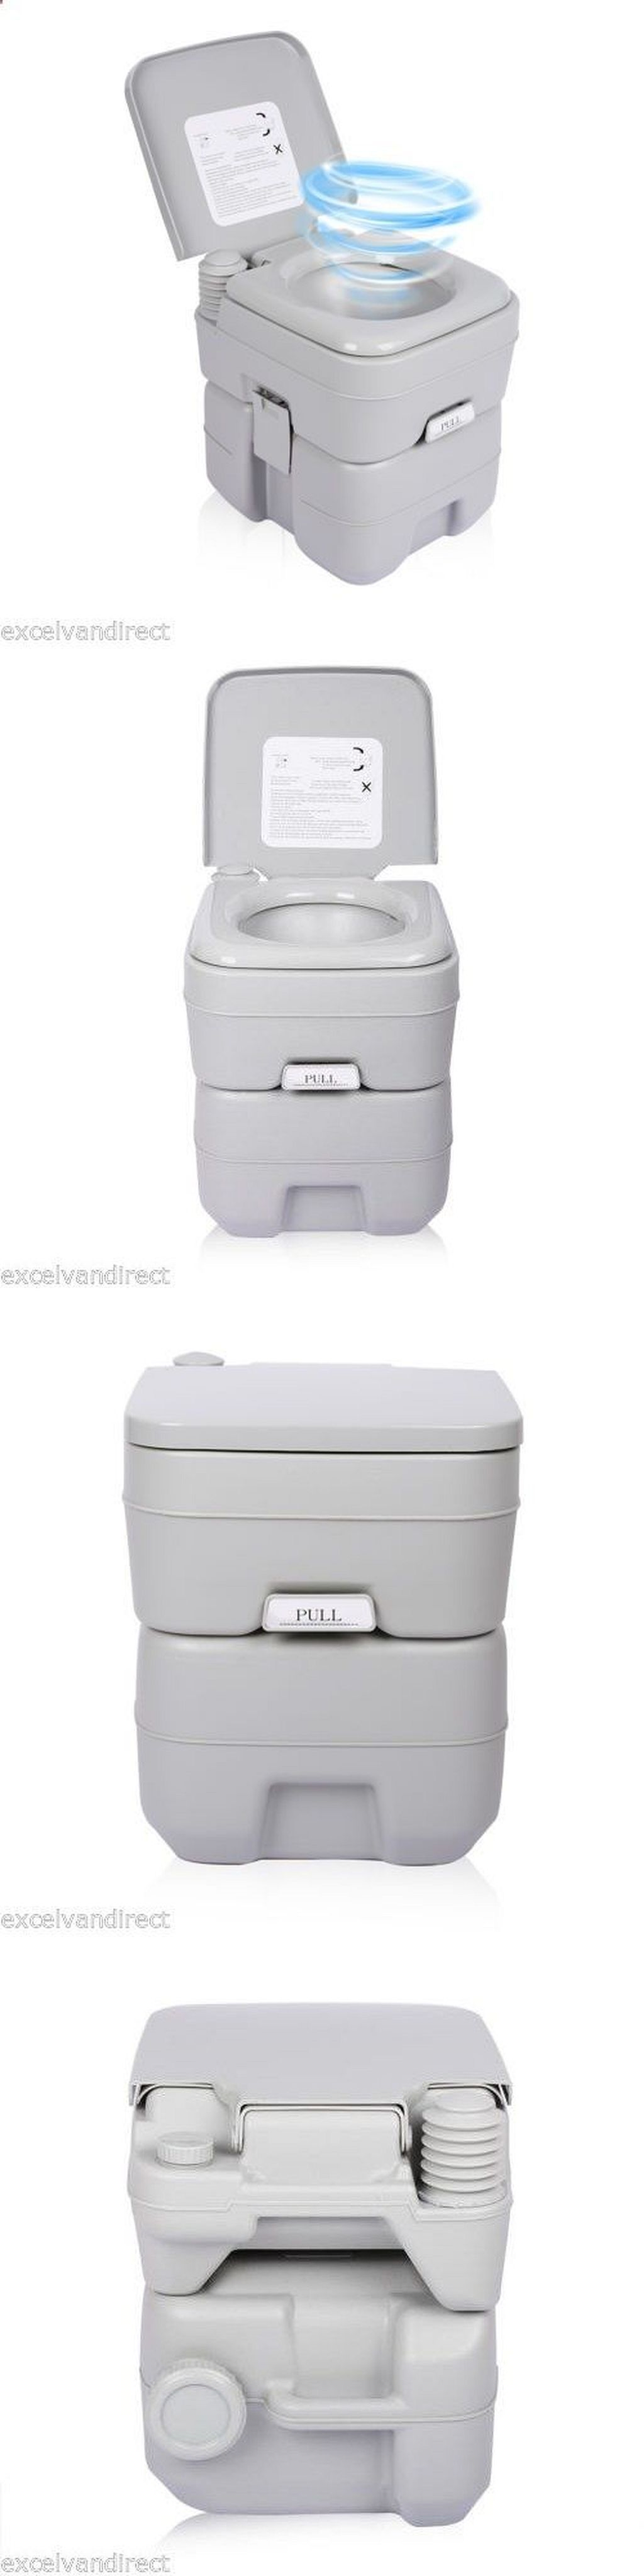 42 Dry Flush Waterless Toilet For Your Outdoor Activity